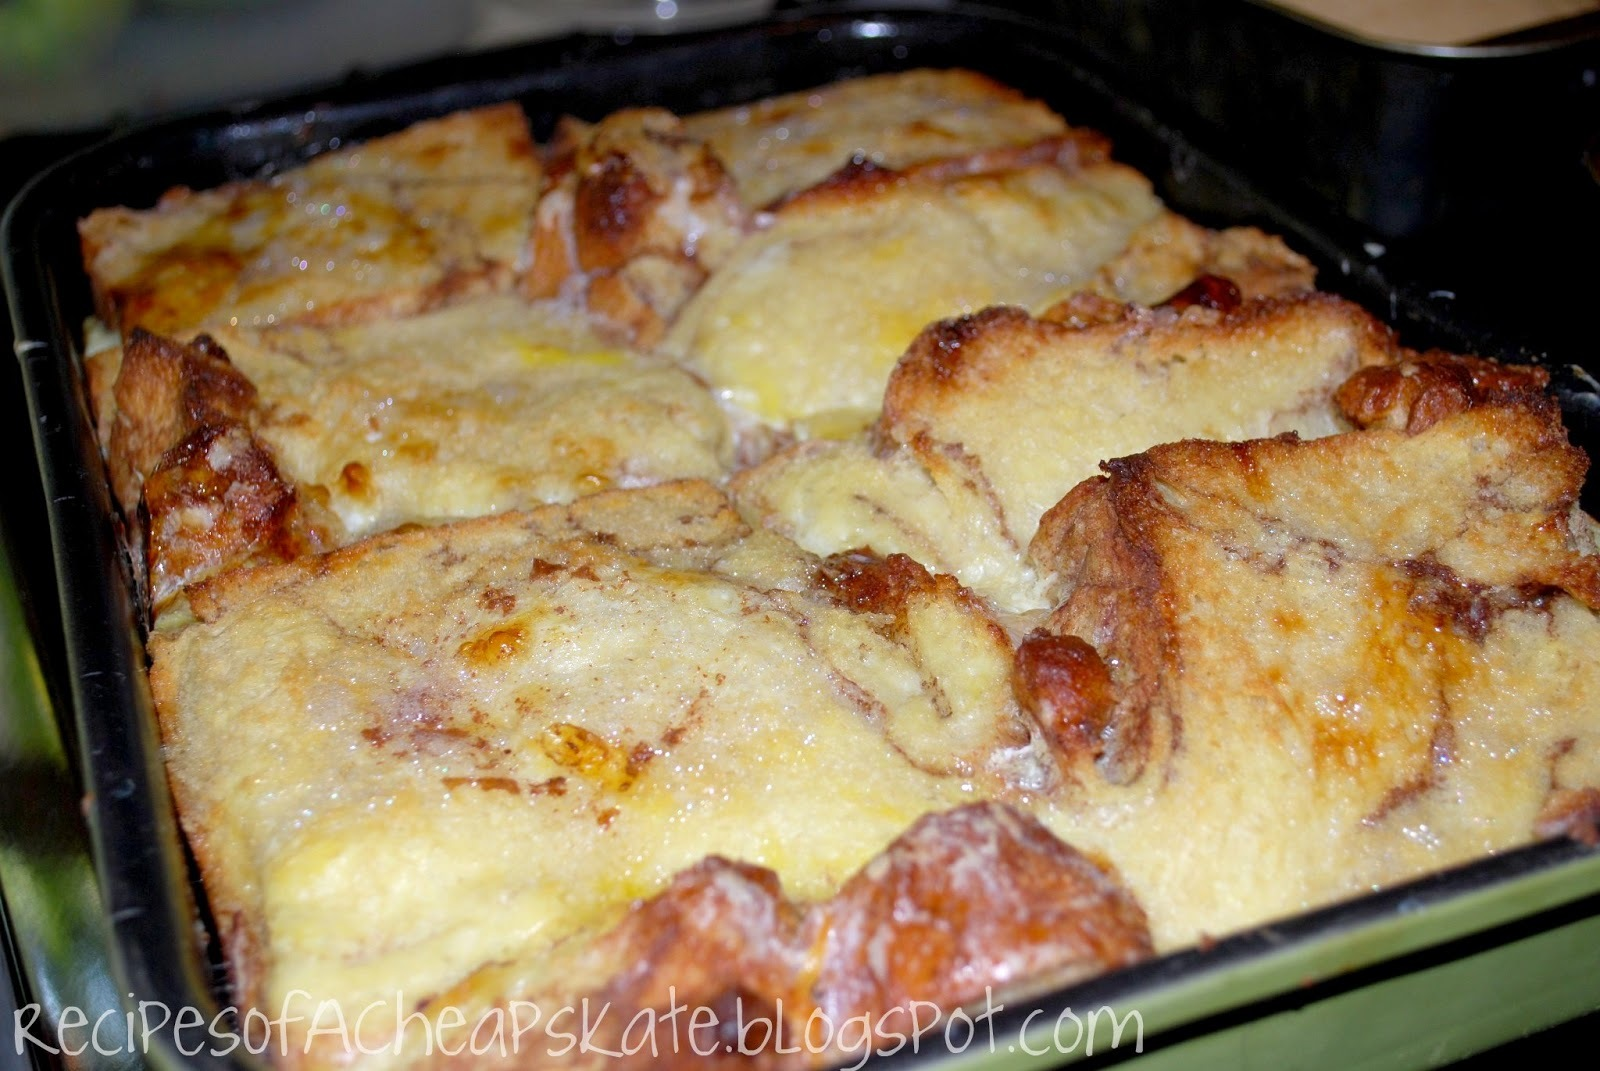 Chunky Cinnamon Baked French Toast